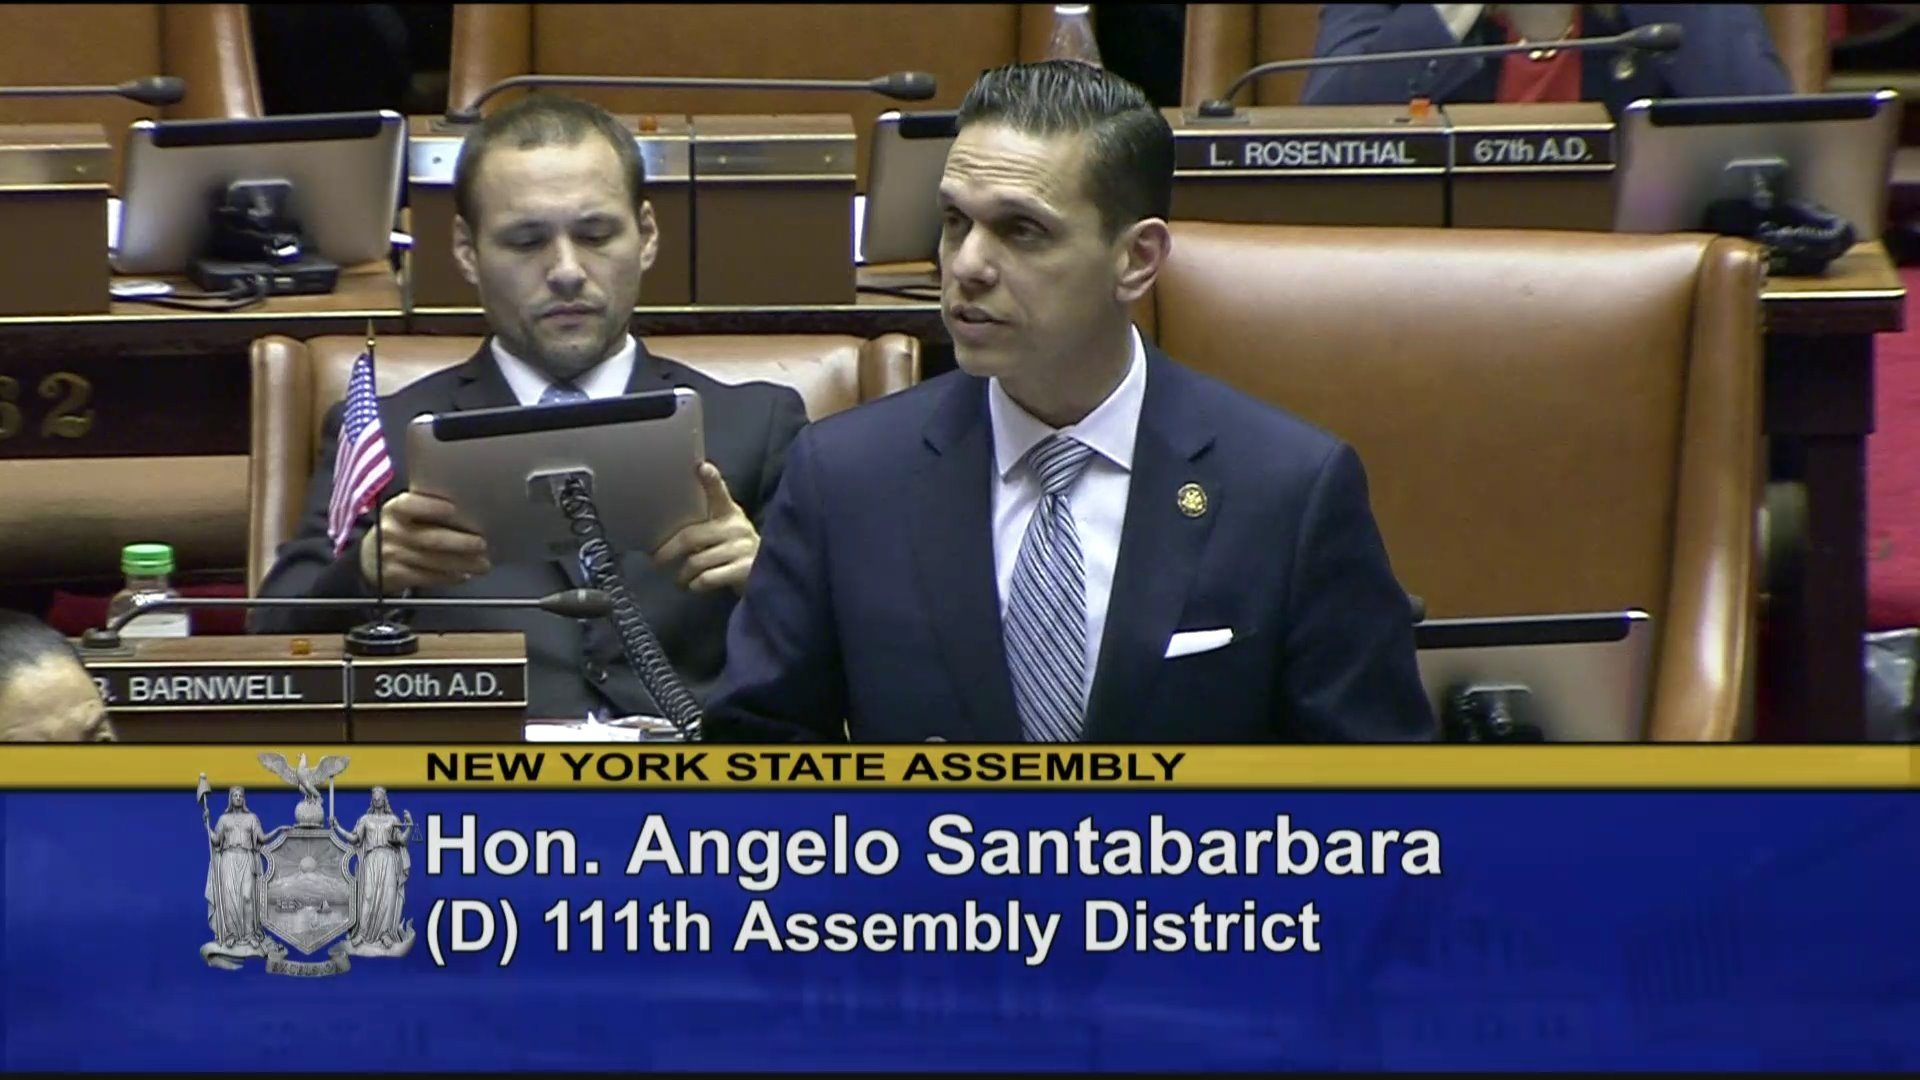 Santabarbara Speaks on Continued Investments in Infrastructure